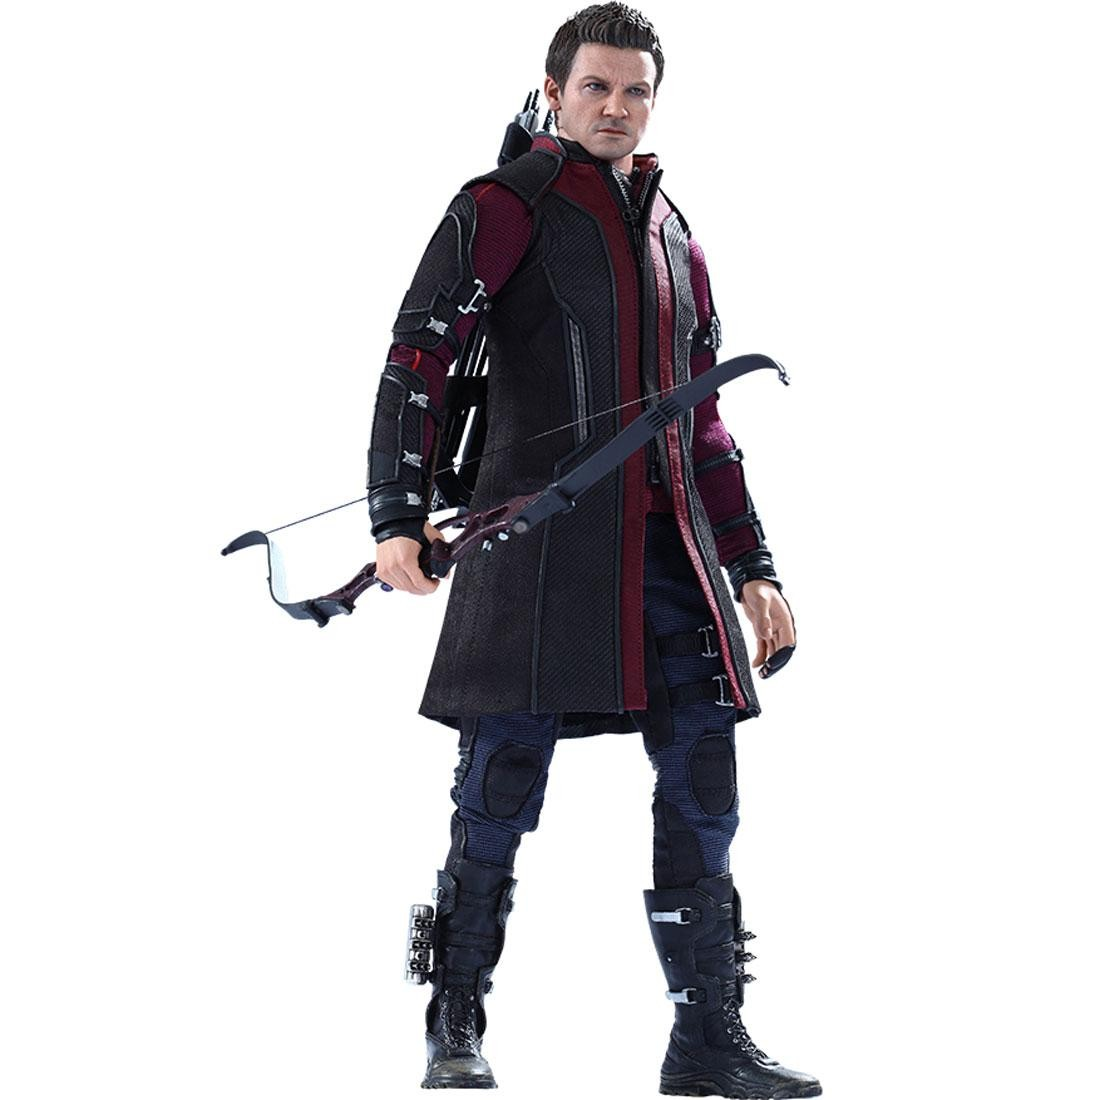 Hot Toys Hawkeye Avengers Age of Ultron 1/6 Scale Collectible Figure (black)